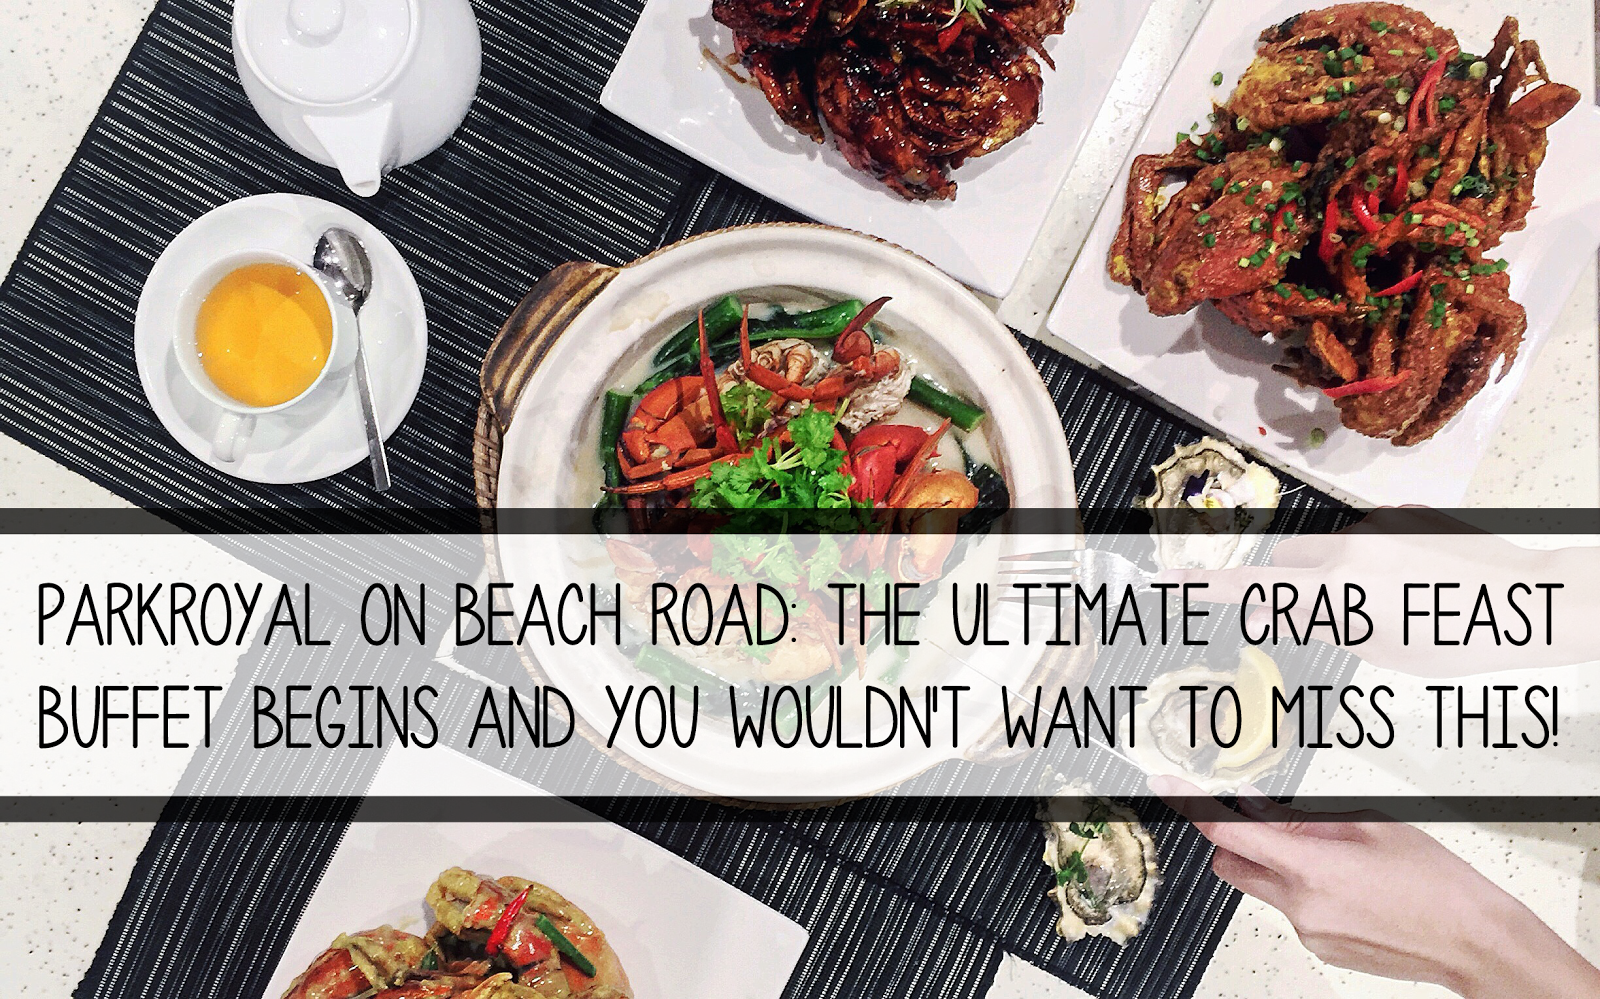 Ultimate Crab Feast PARKROYAL Beach